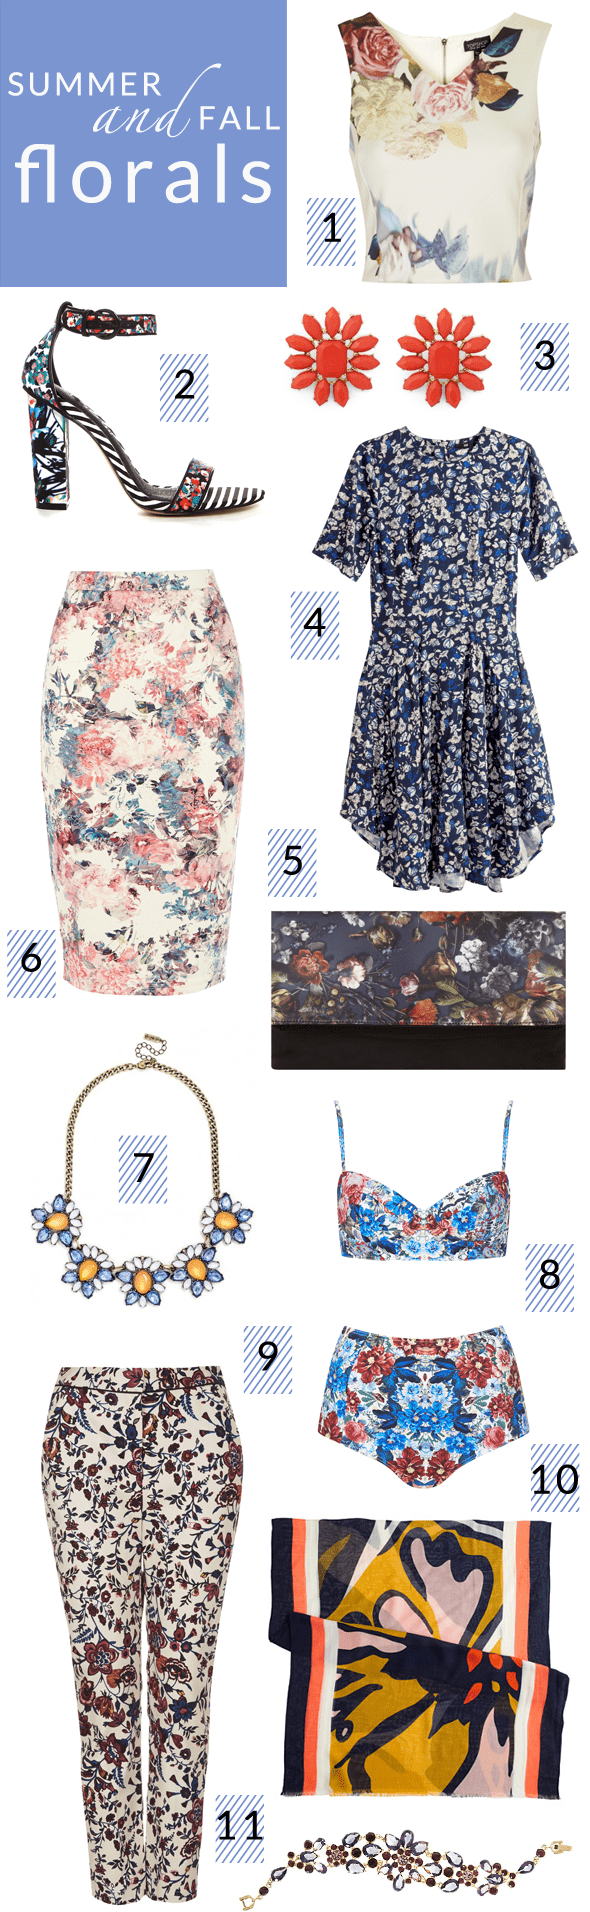 Poor Little It Girl - Fall Florals Under $100